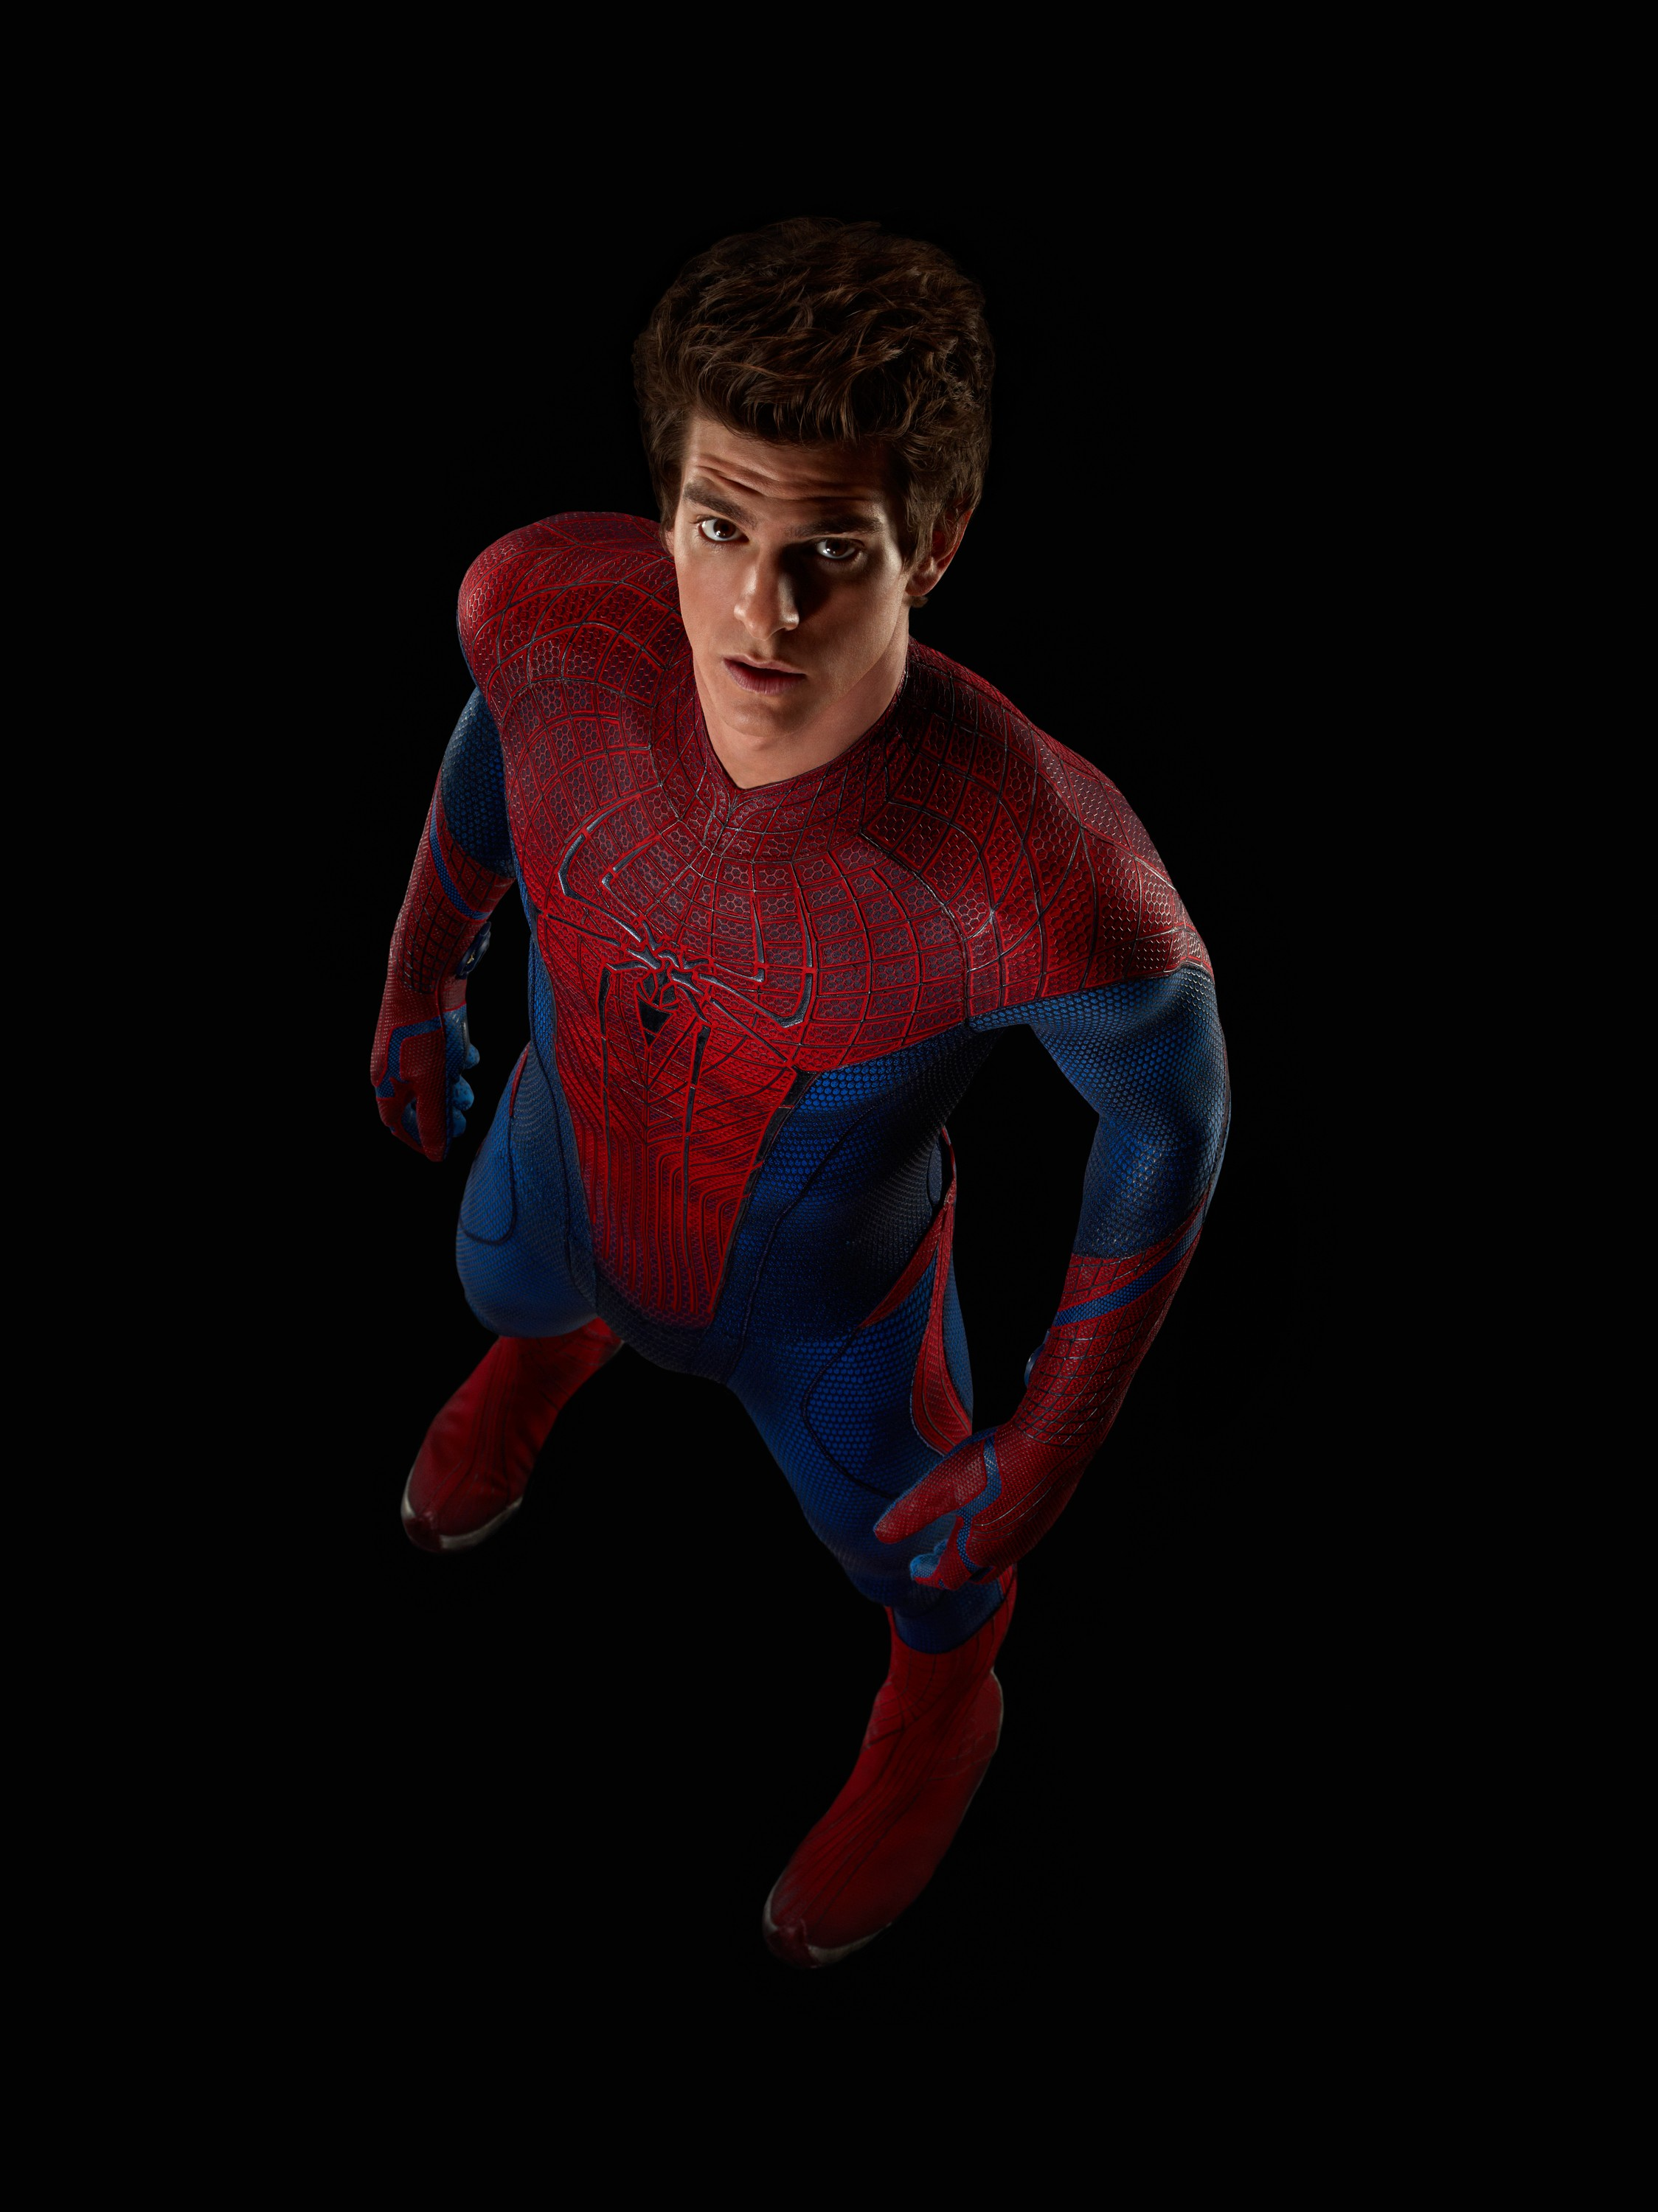 High Resolution Wallpaper   The Amazing Spider Man 2248x3000 px